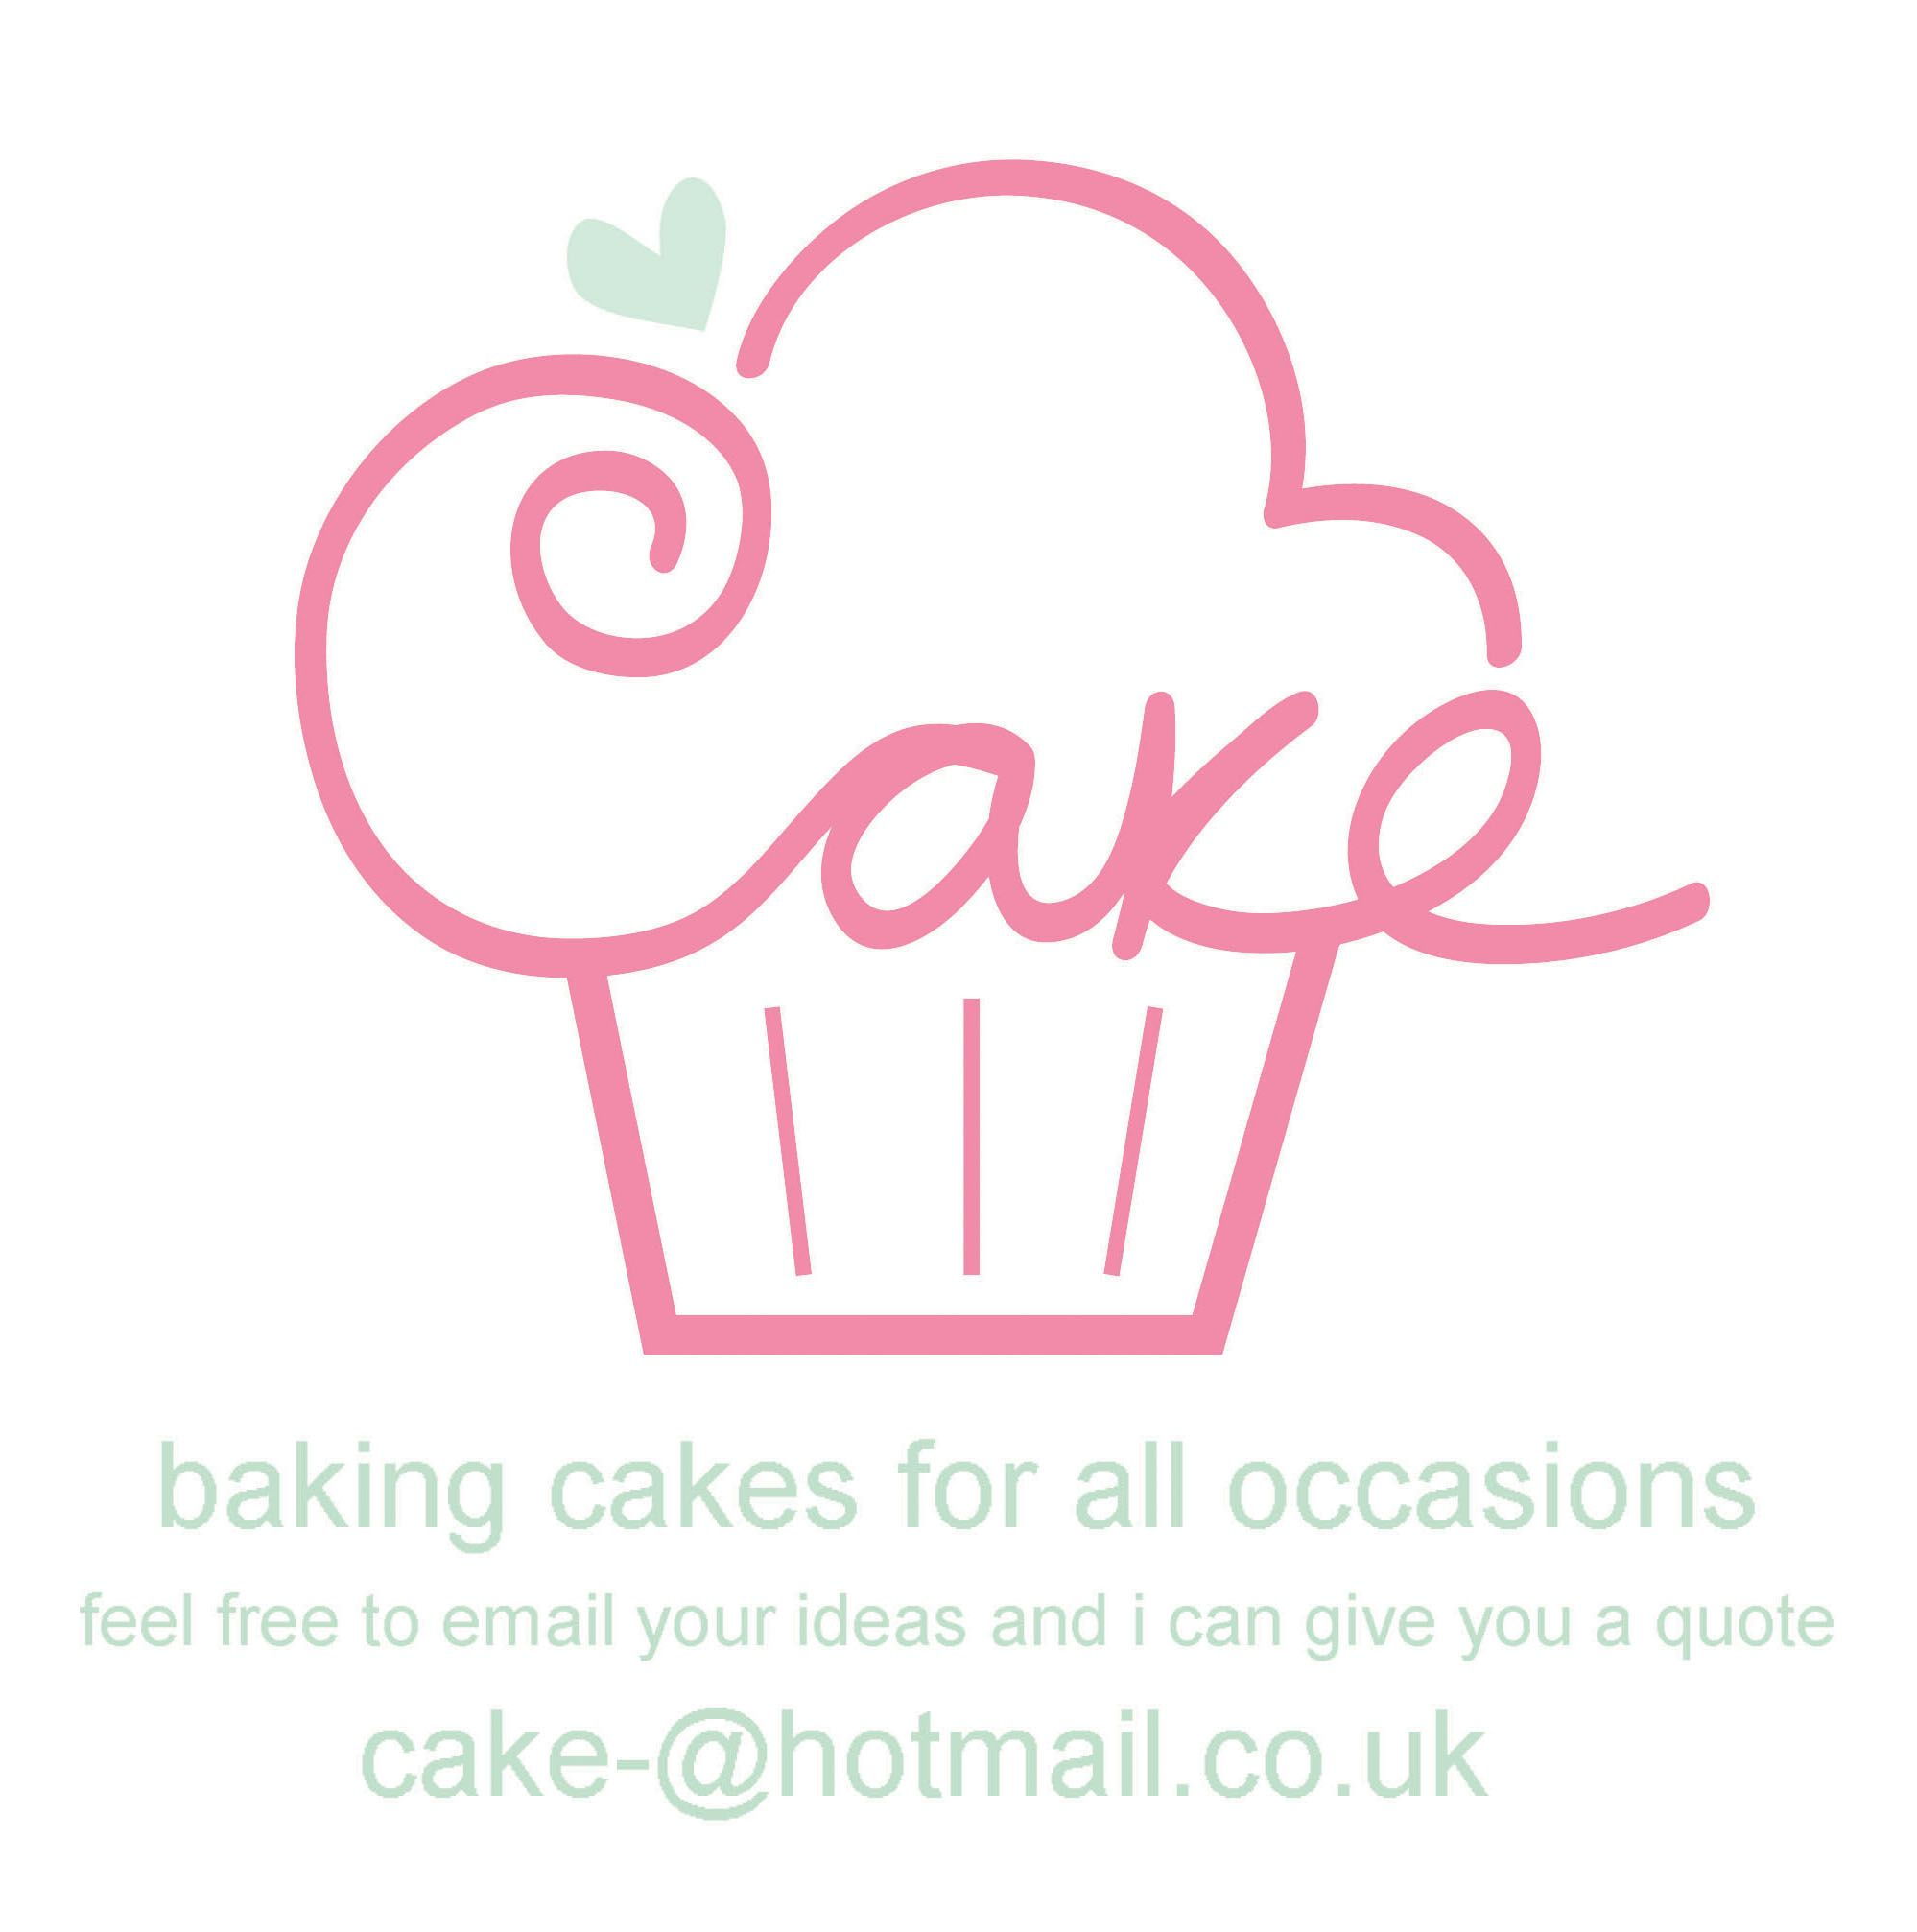 new cake logo from the beginning cake logo business logo design and logos